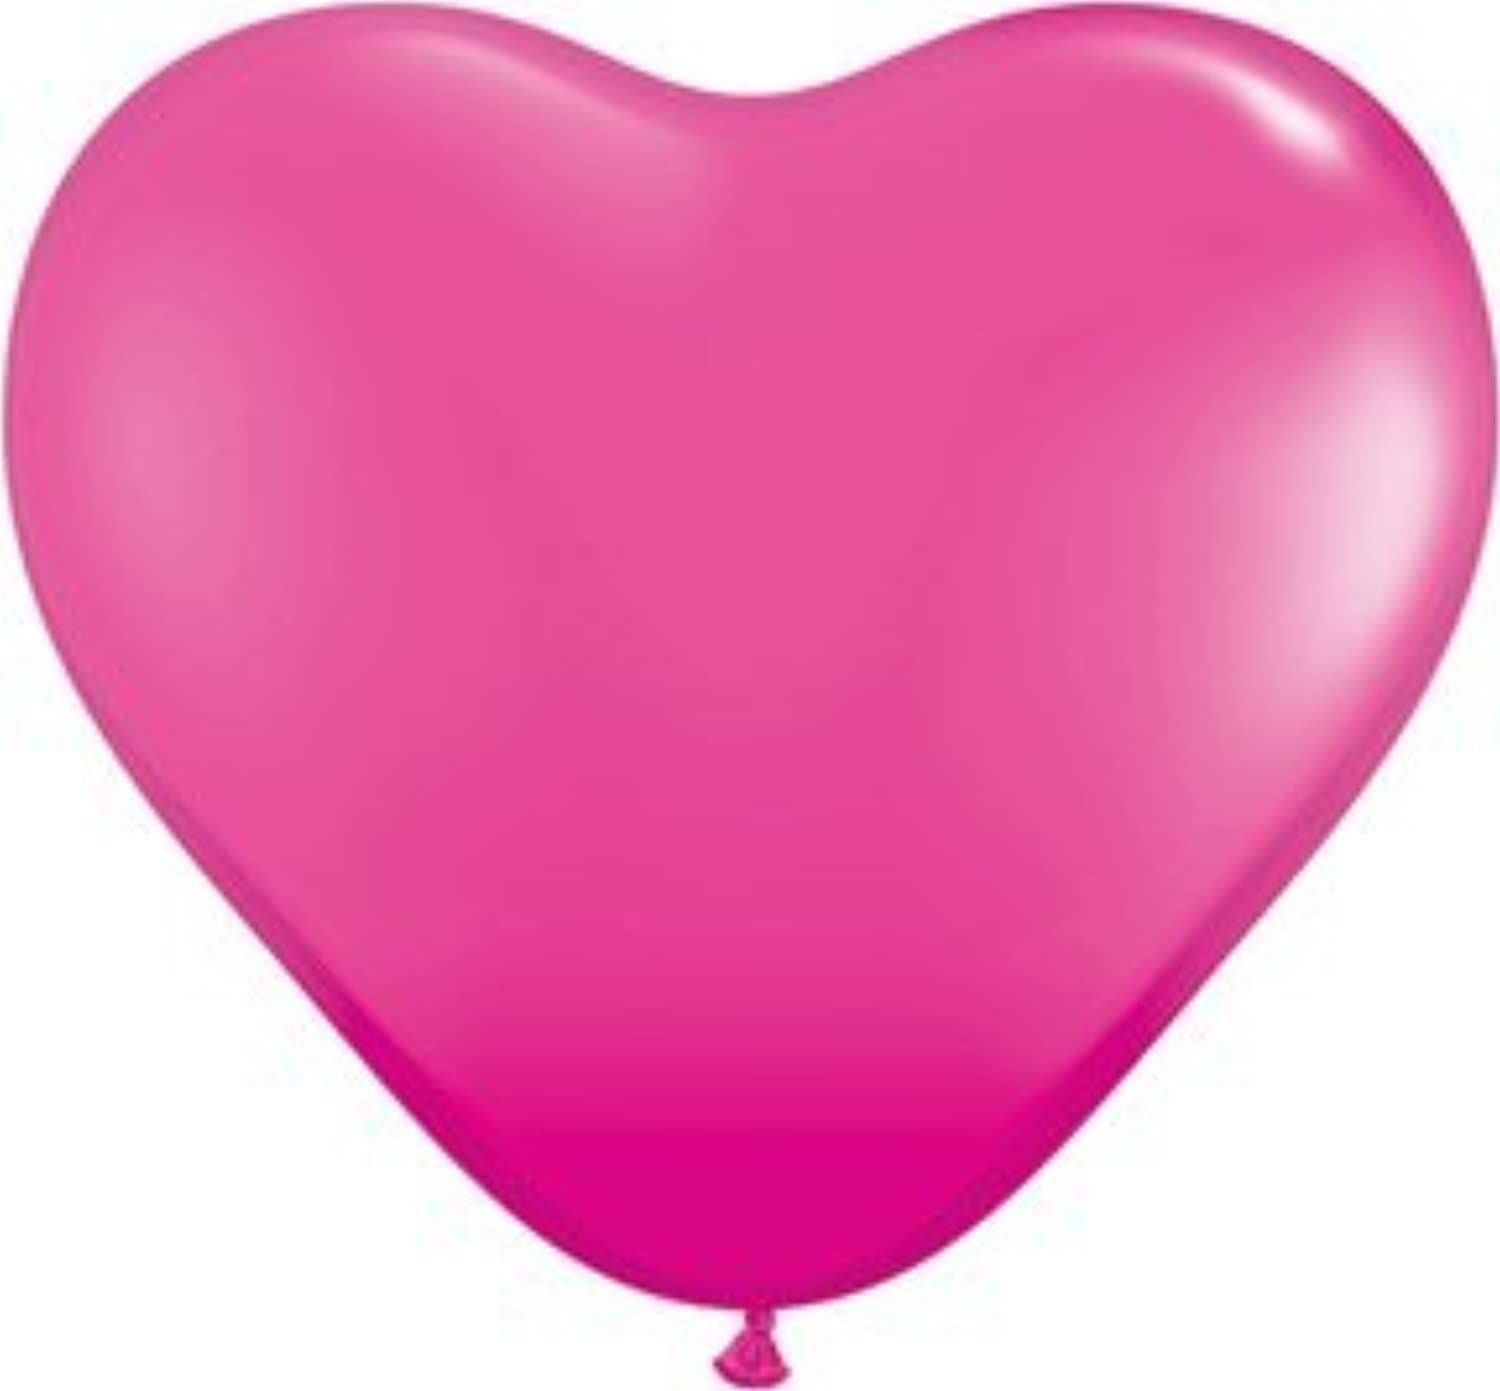 Wild Berry Pink 6 Latex Hearts Qualatex Balloons x 25 by Qualatex